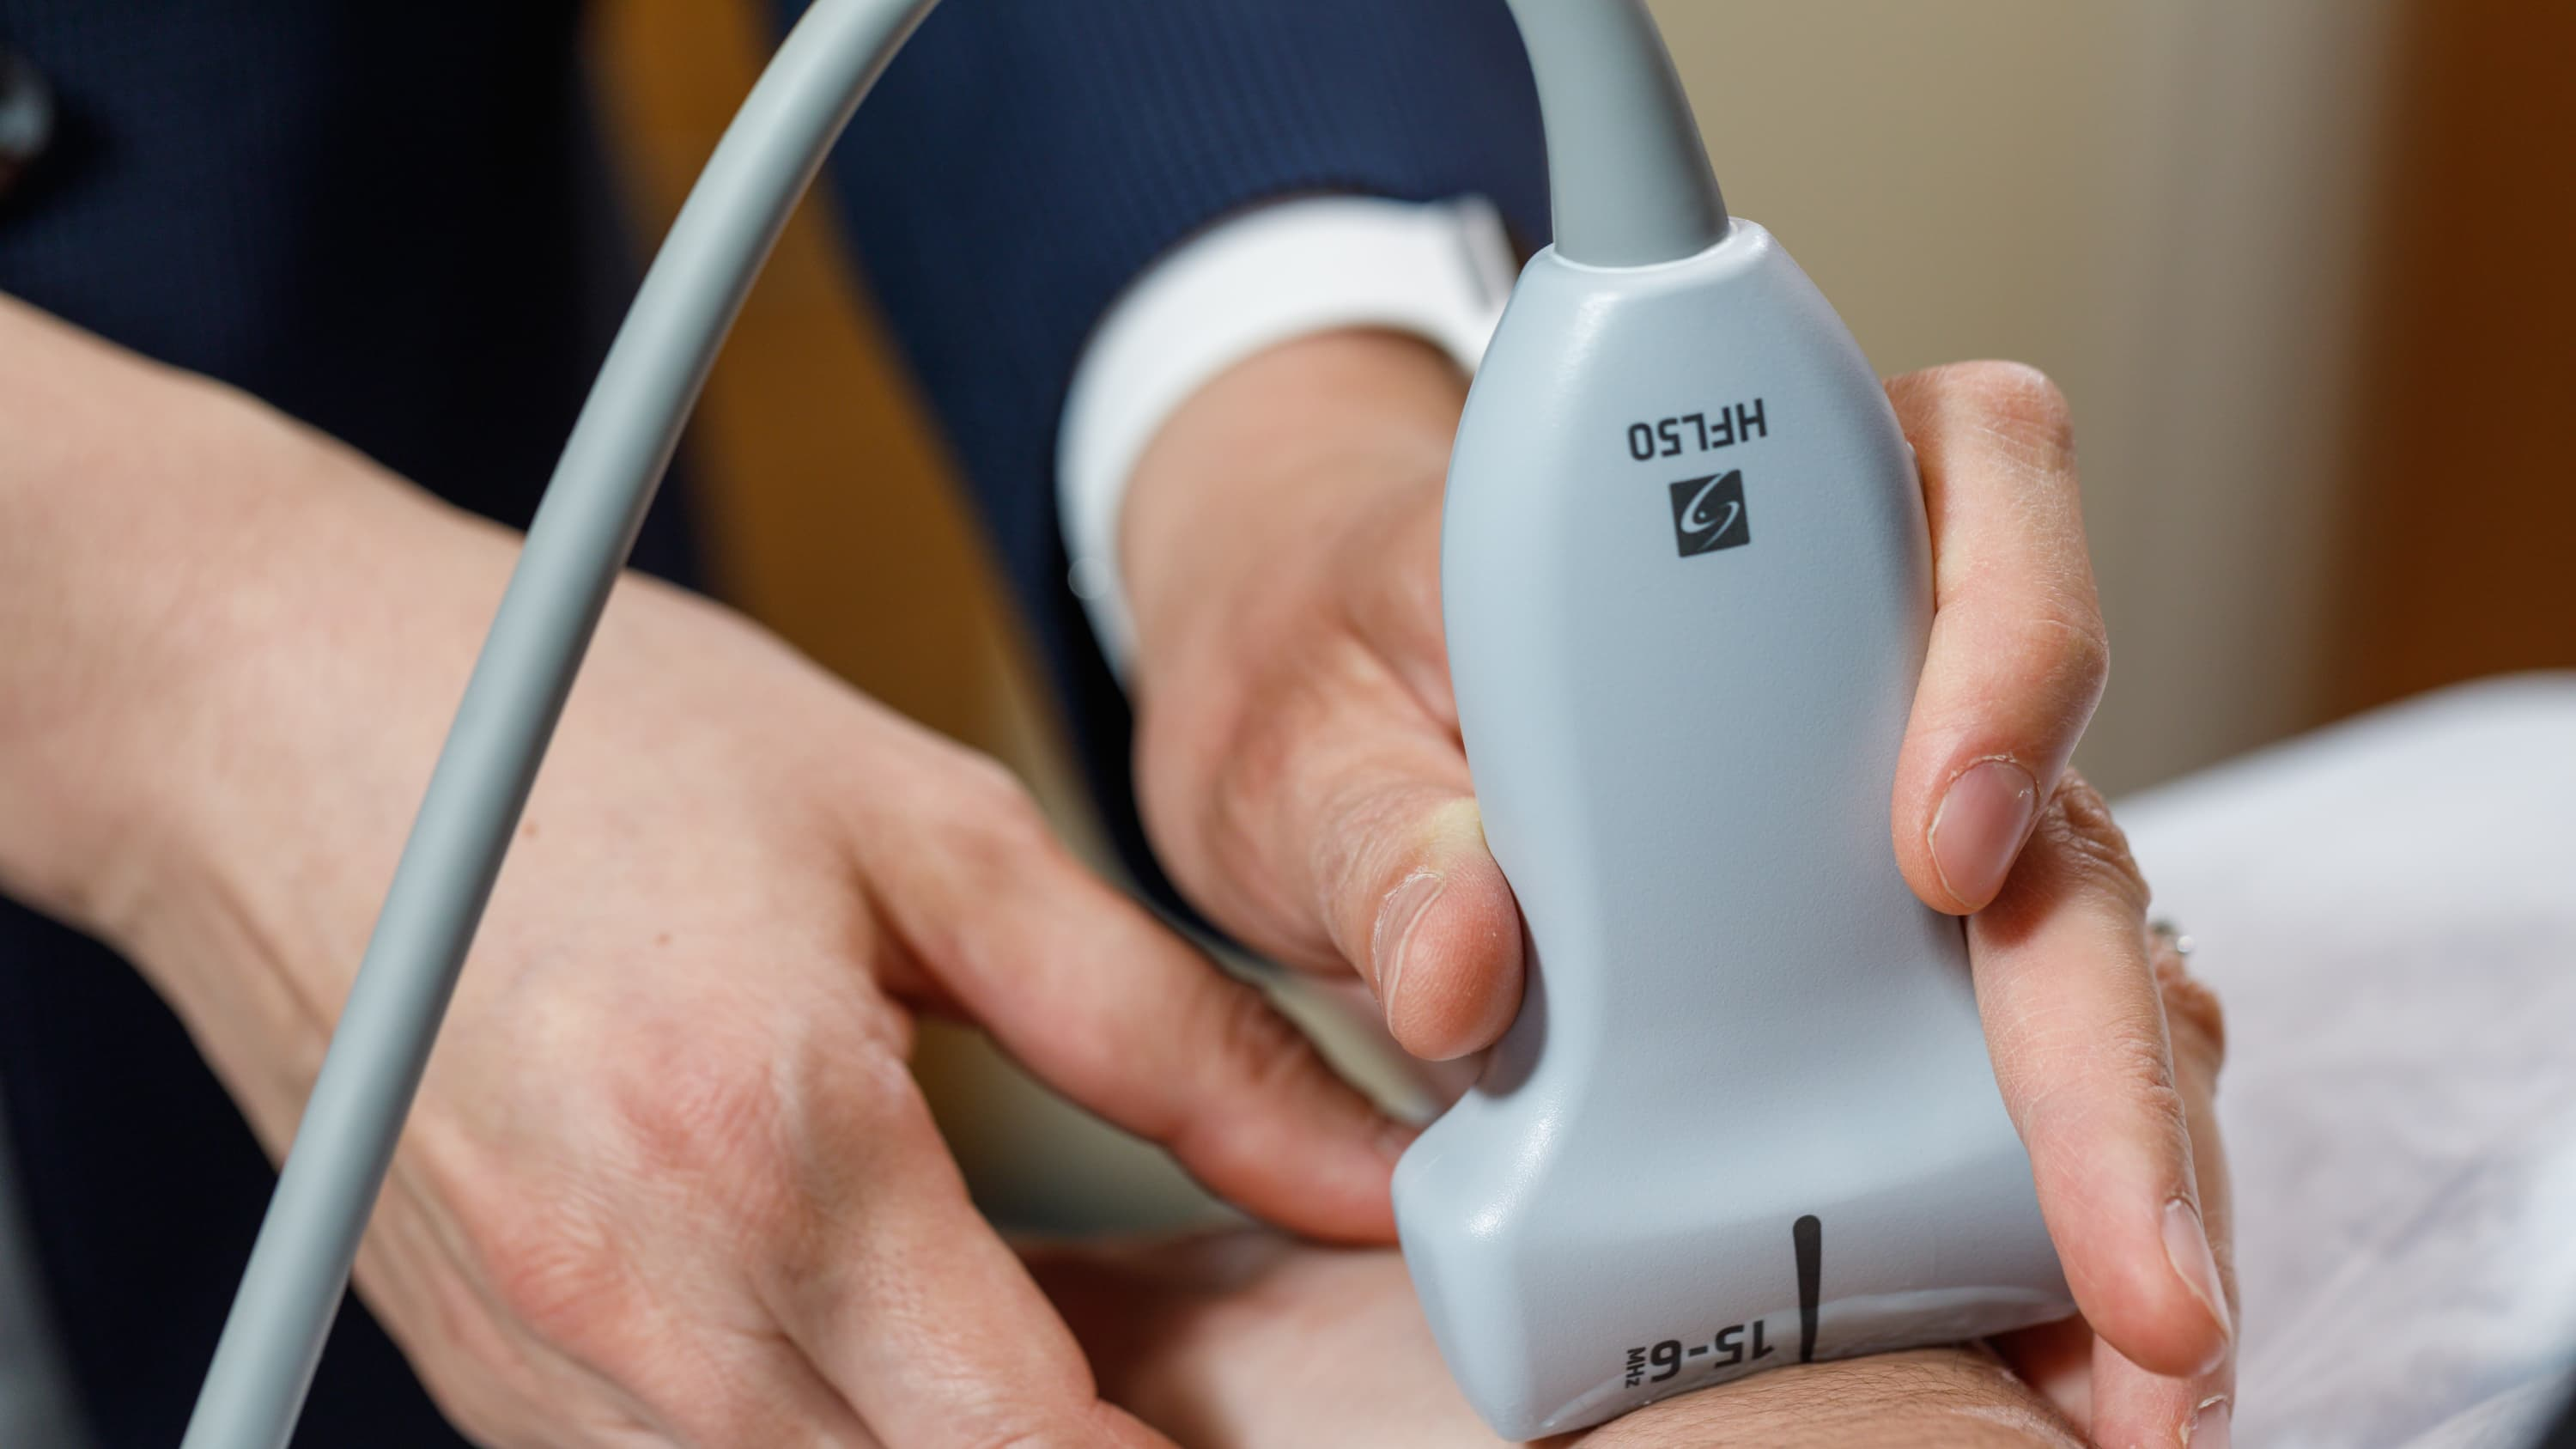 A doctor uses a muskuloskeletal ultrasound on a patient's wrist.